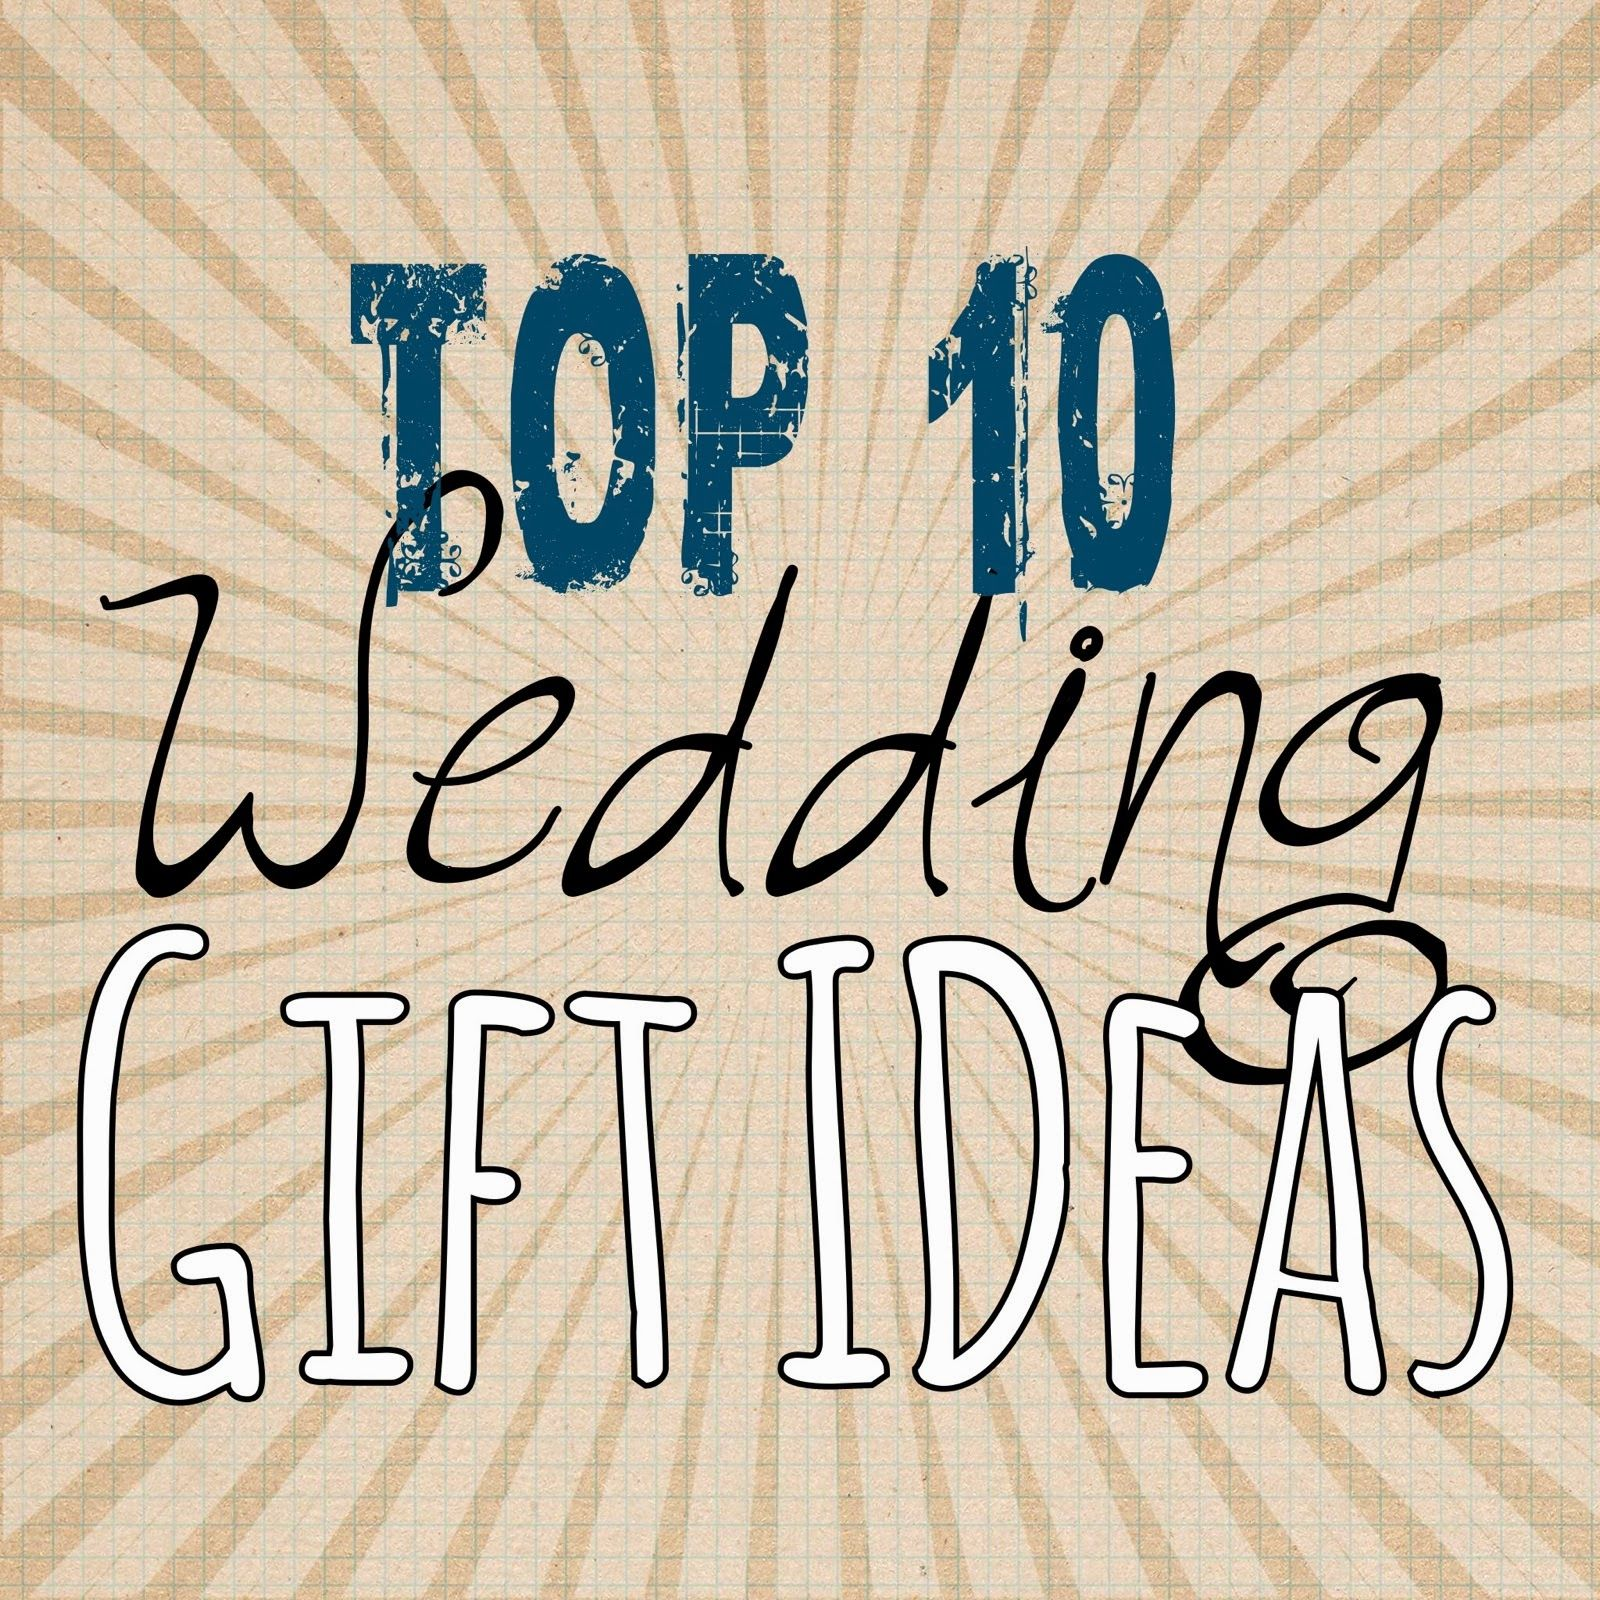 Wedding gifts ideas regarding interest event category for wedding wedding gifts ideas regarding interest event category for wedding gift ideas argos with label junglespirit Image collections